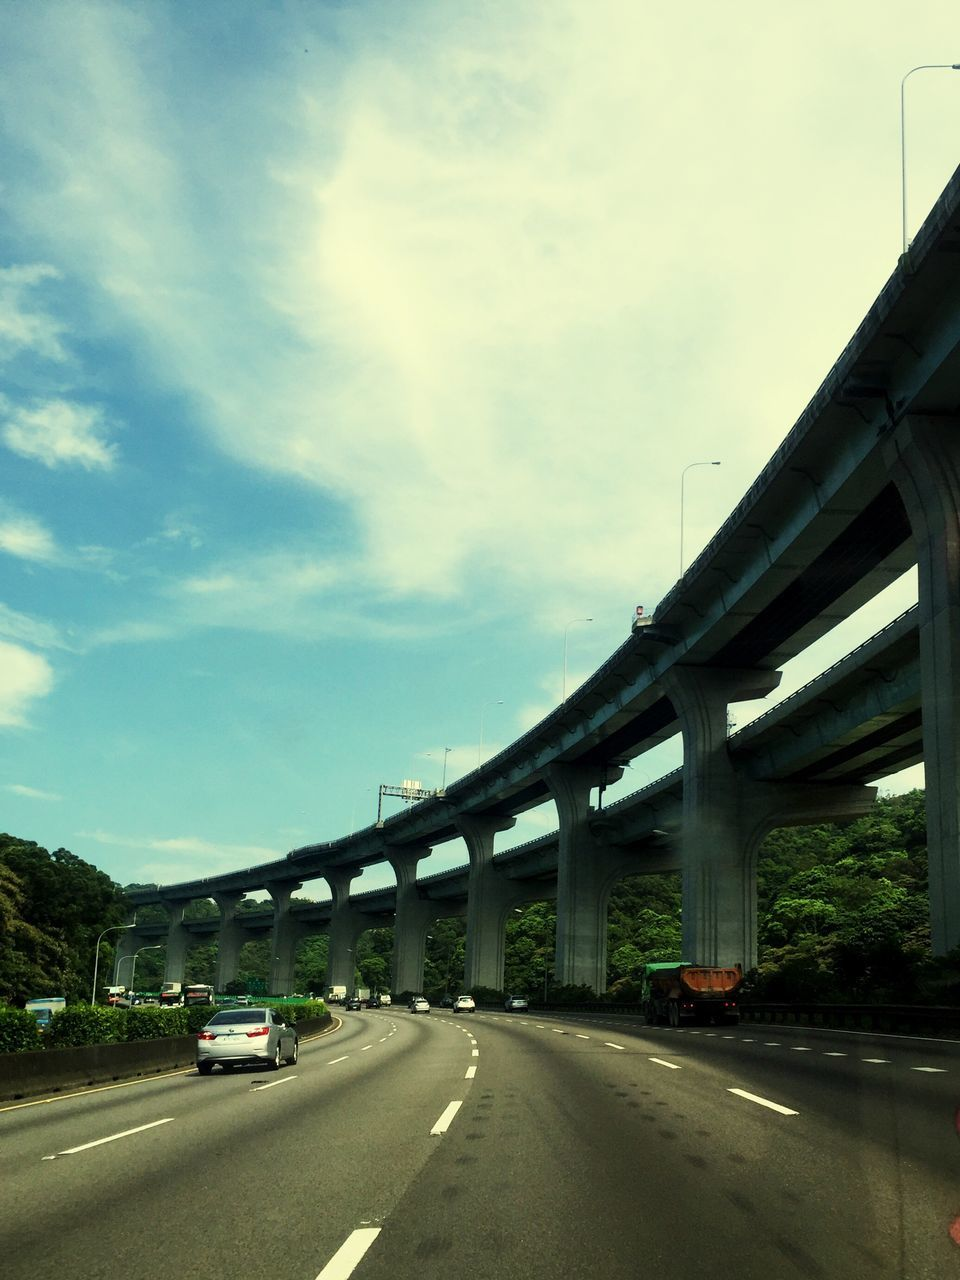 transportation, bridge - man made structure, road, connection, car, sky, mode of transport, the way forward, land vehicle, cloud - sky, architecture, outdoors, built structure, day, no people, nature, tree, city